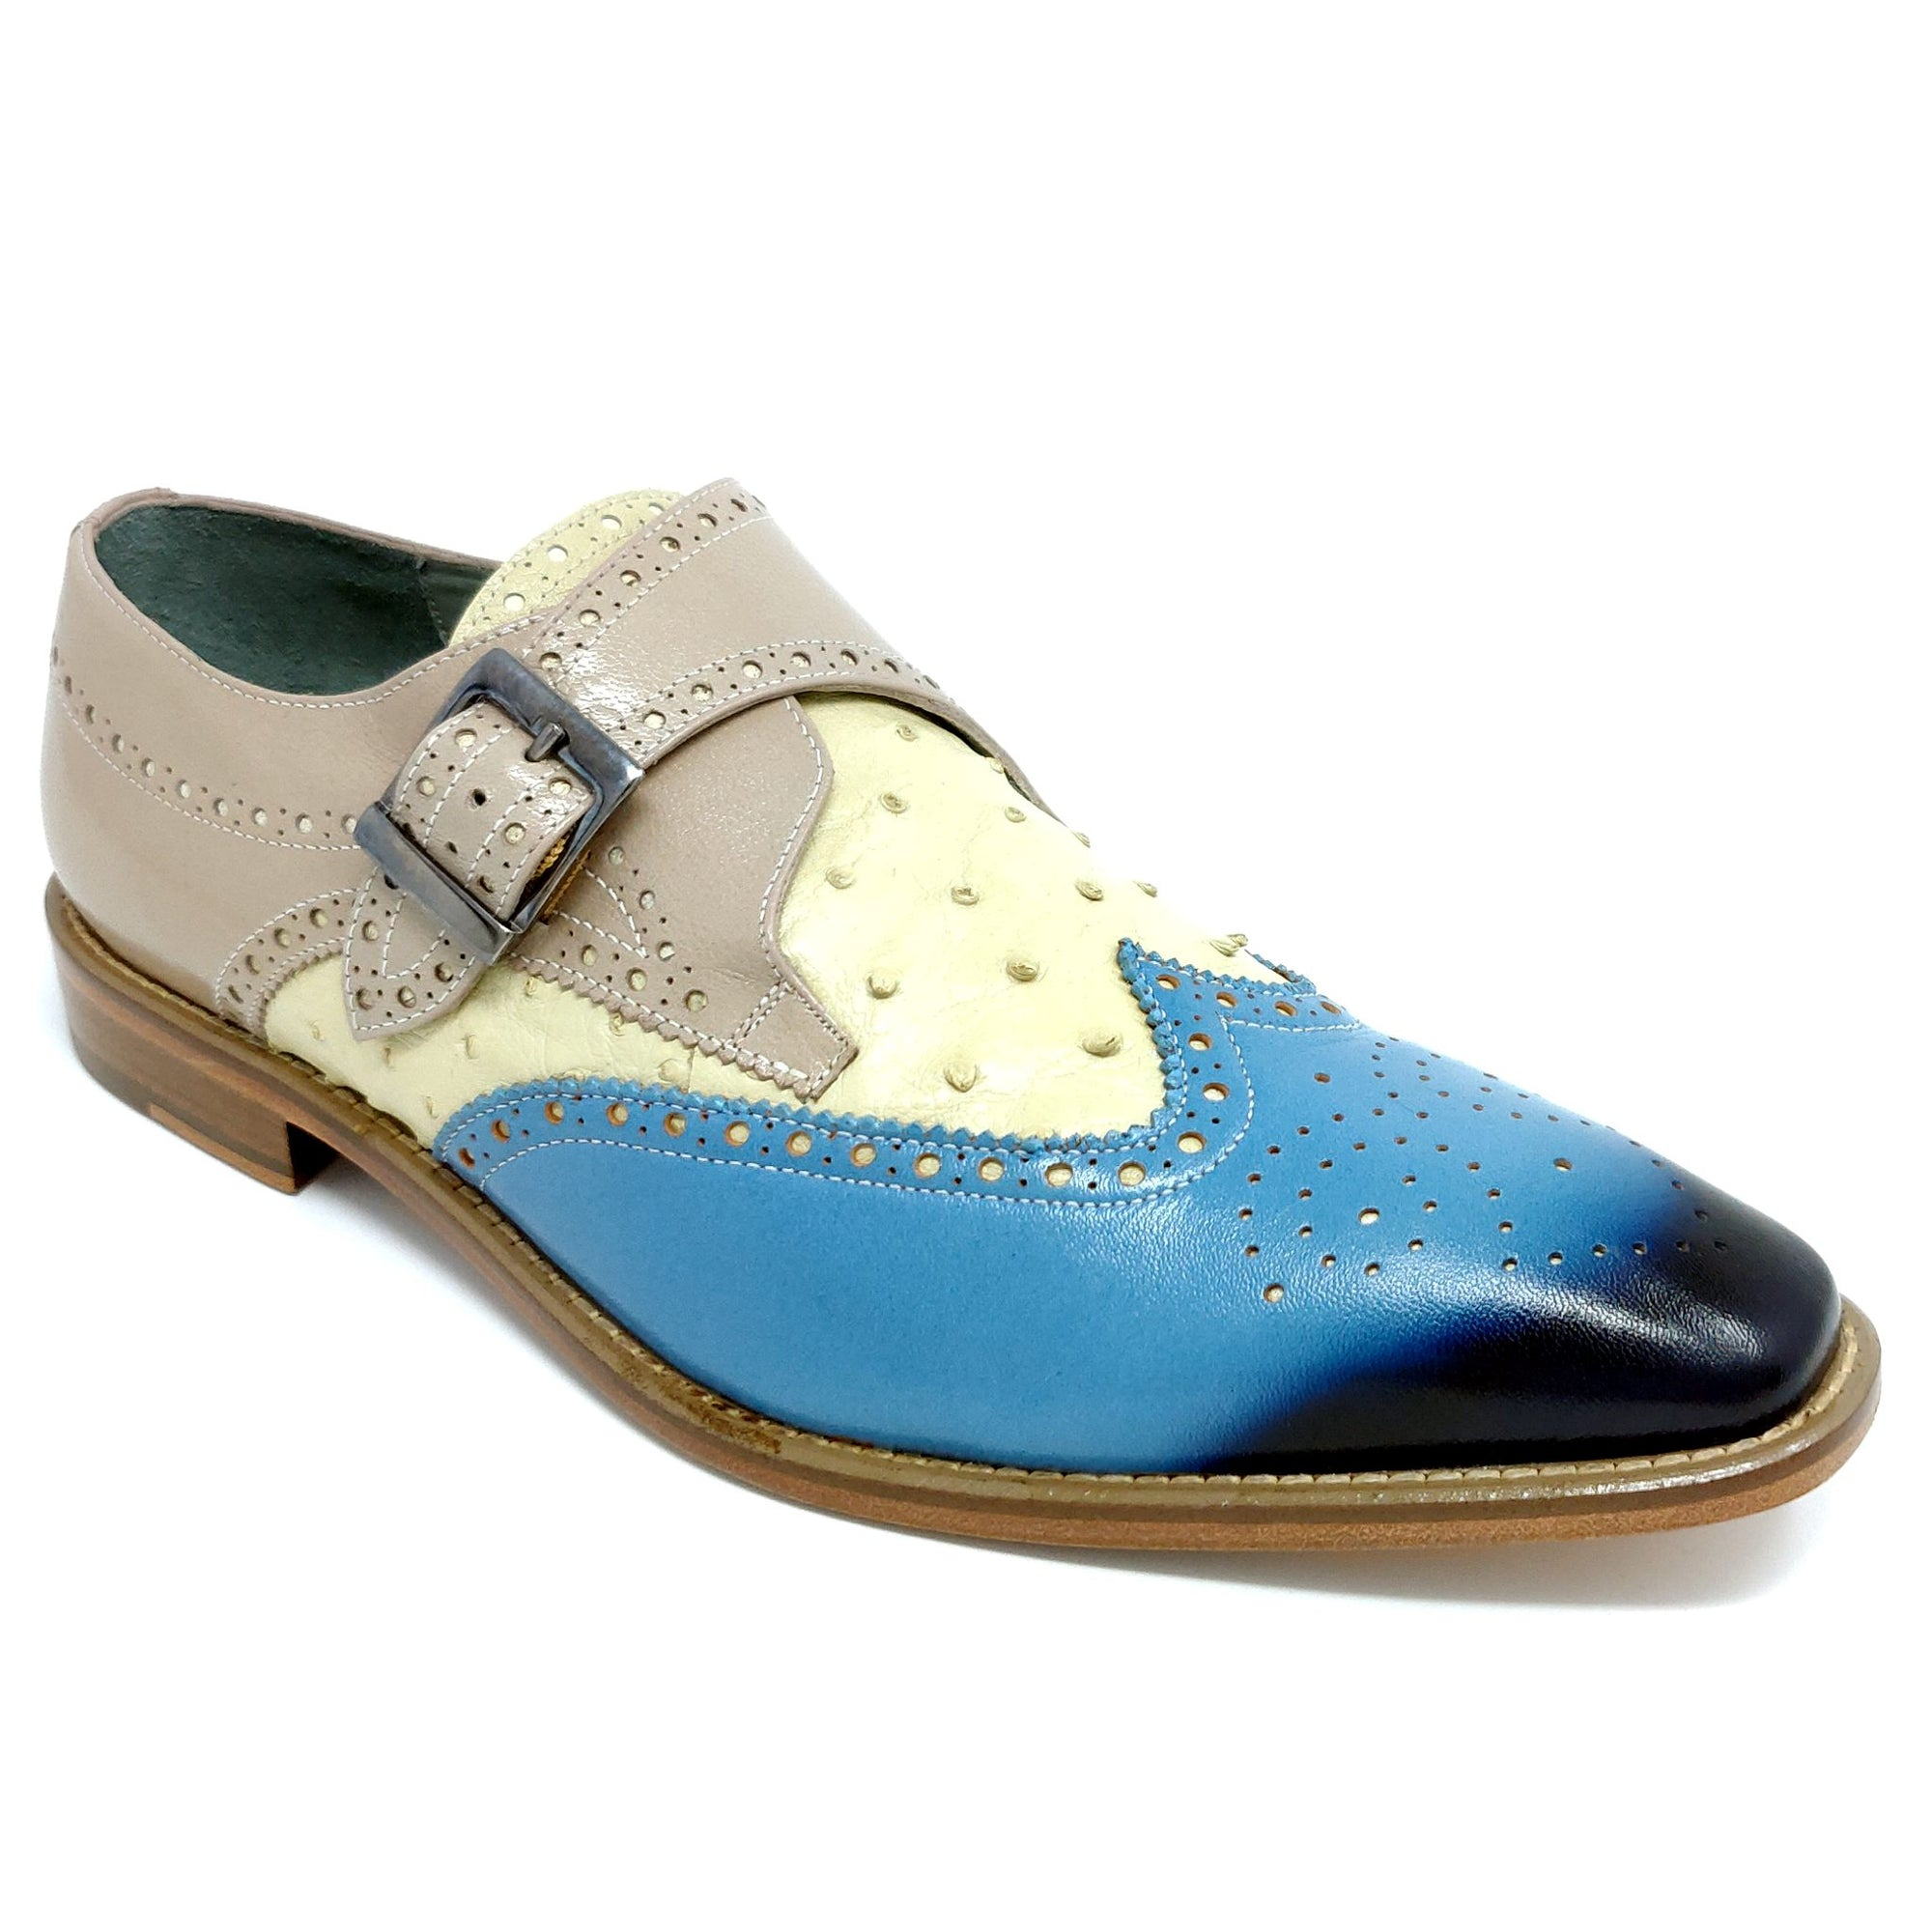 Belvedere Furio, Genuine Ostrich and Italian Calf Monk Strap Wing Tip - Light Blue / Bone / Taupe - Dapperfam.com